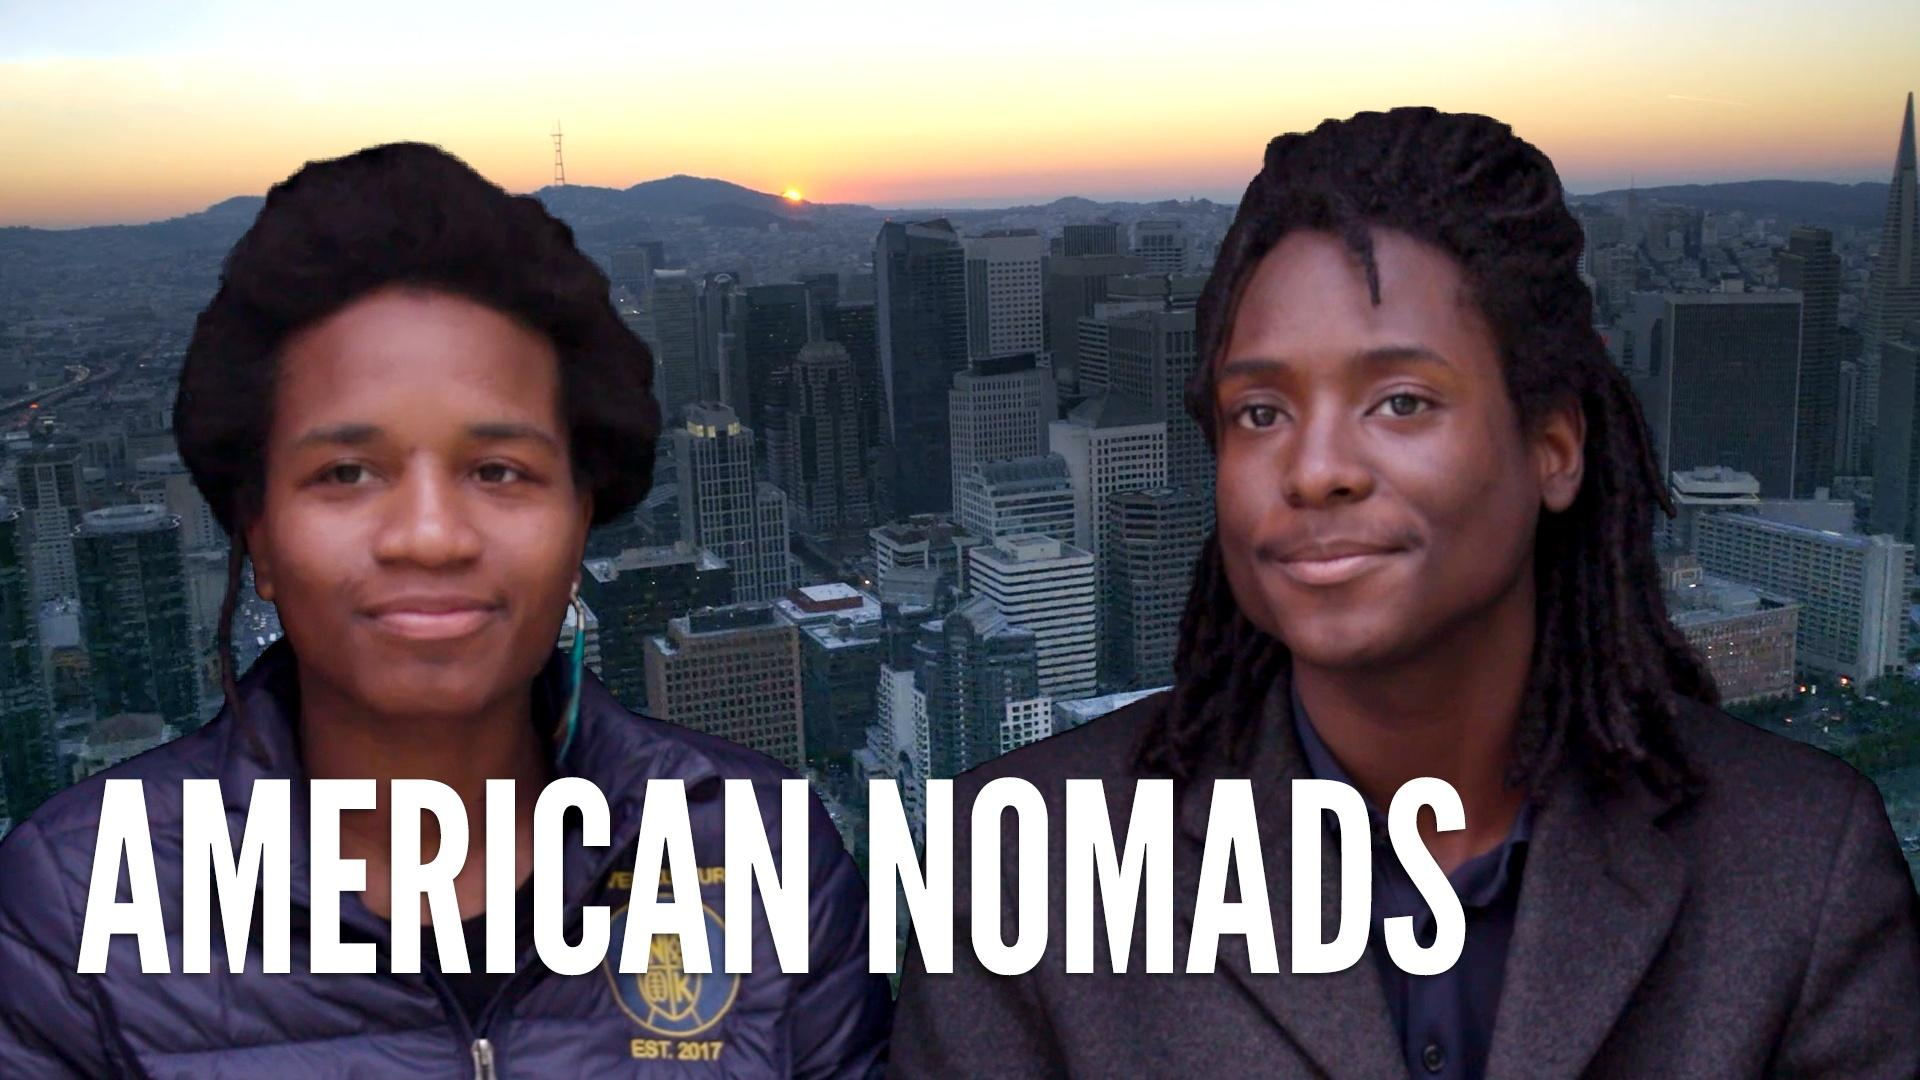 Thumbnail for: Young Veteran Couple Attend College While Stealth Camping | American Nomads, Ep. 5